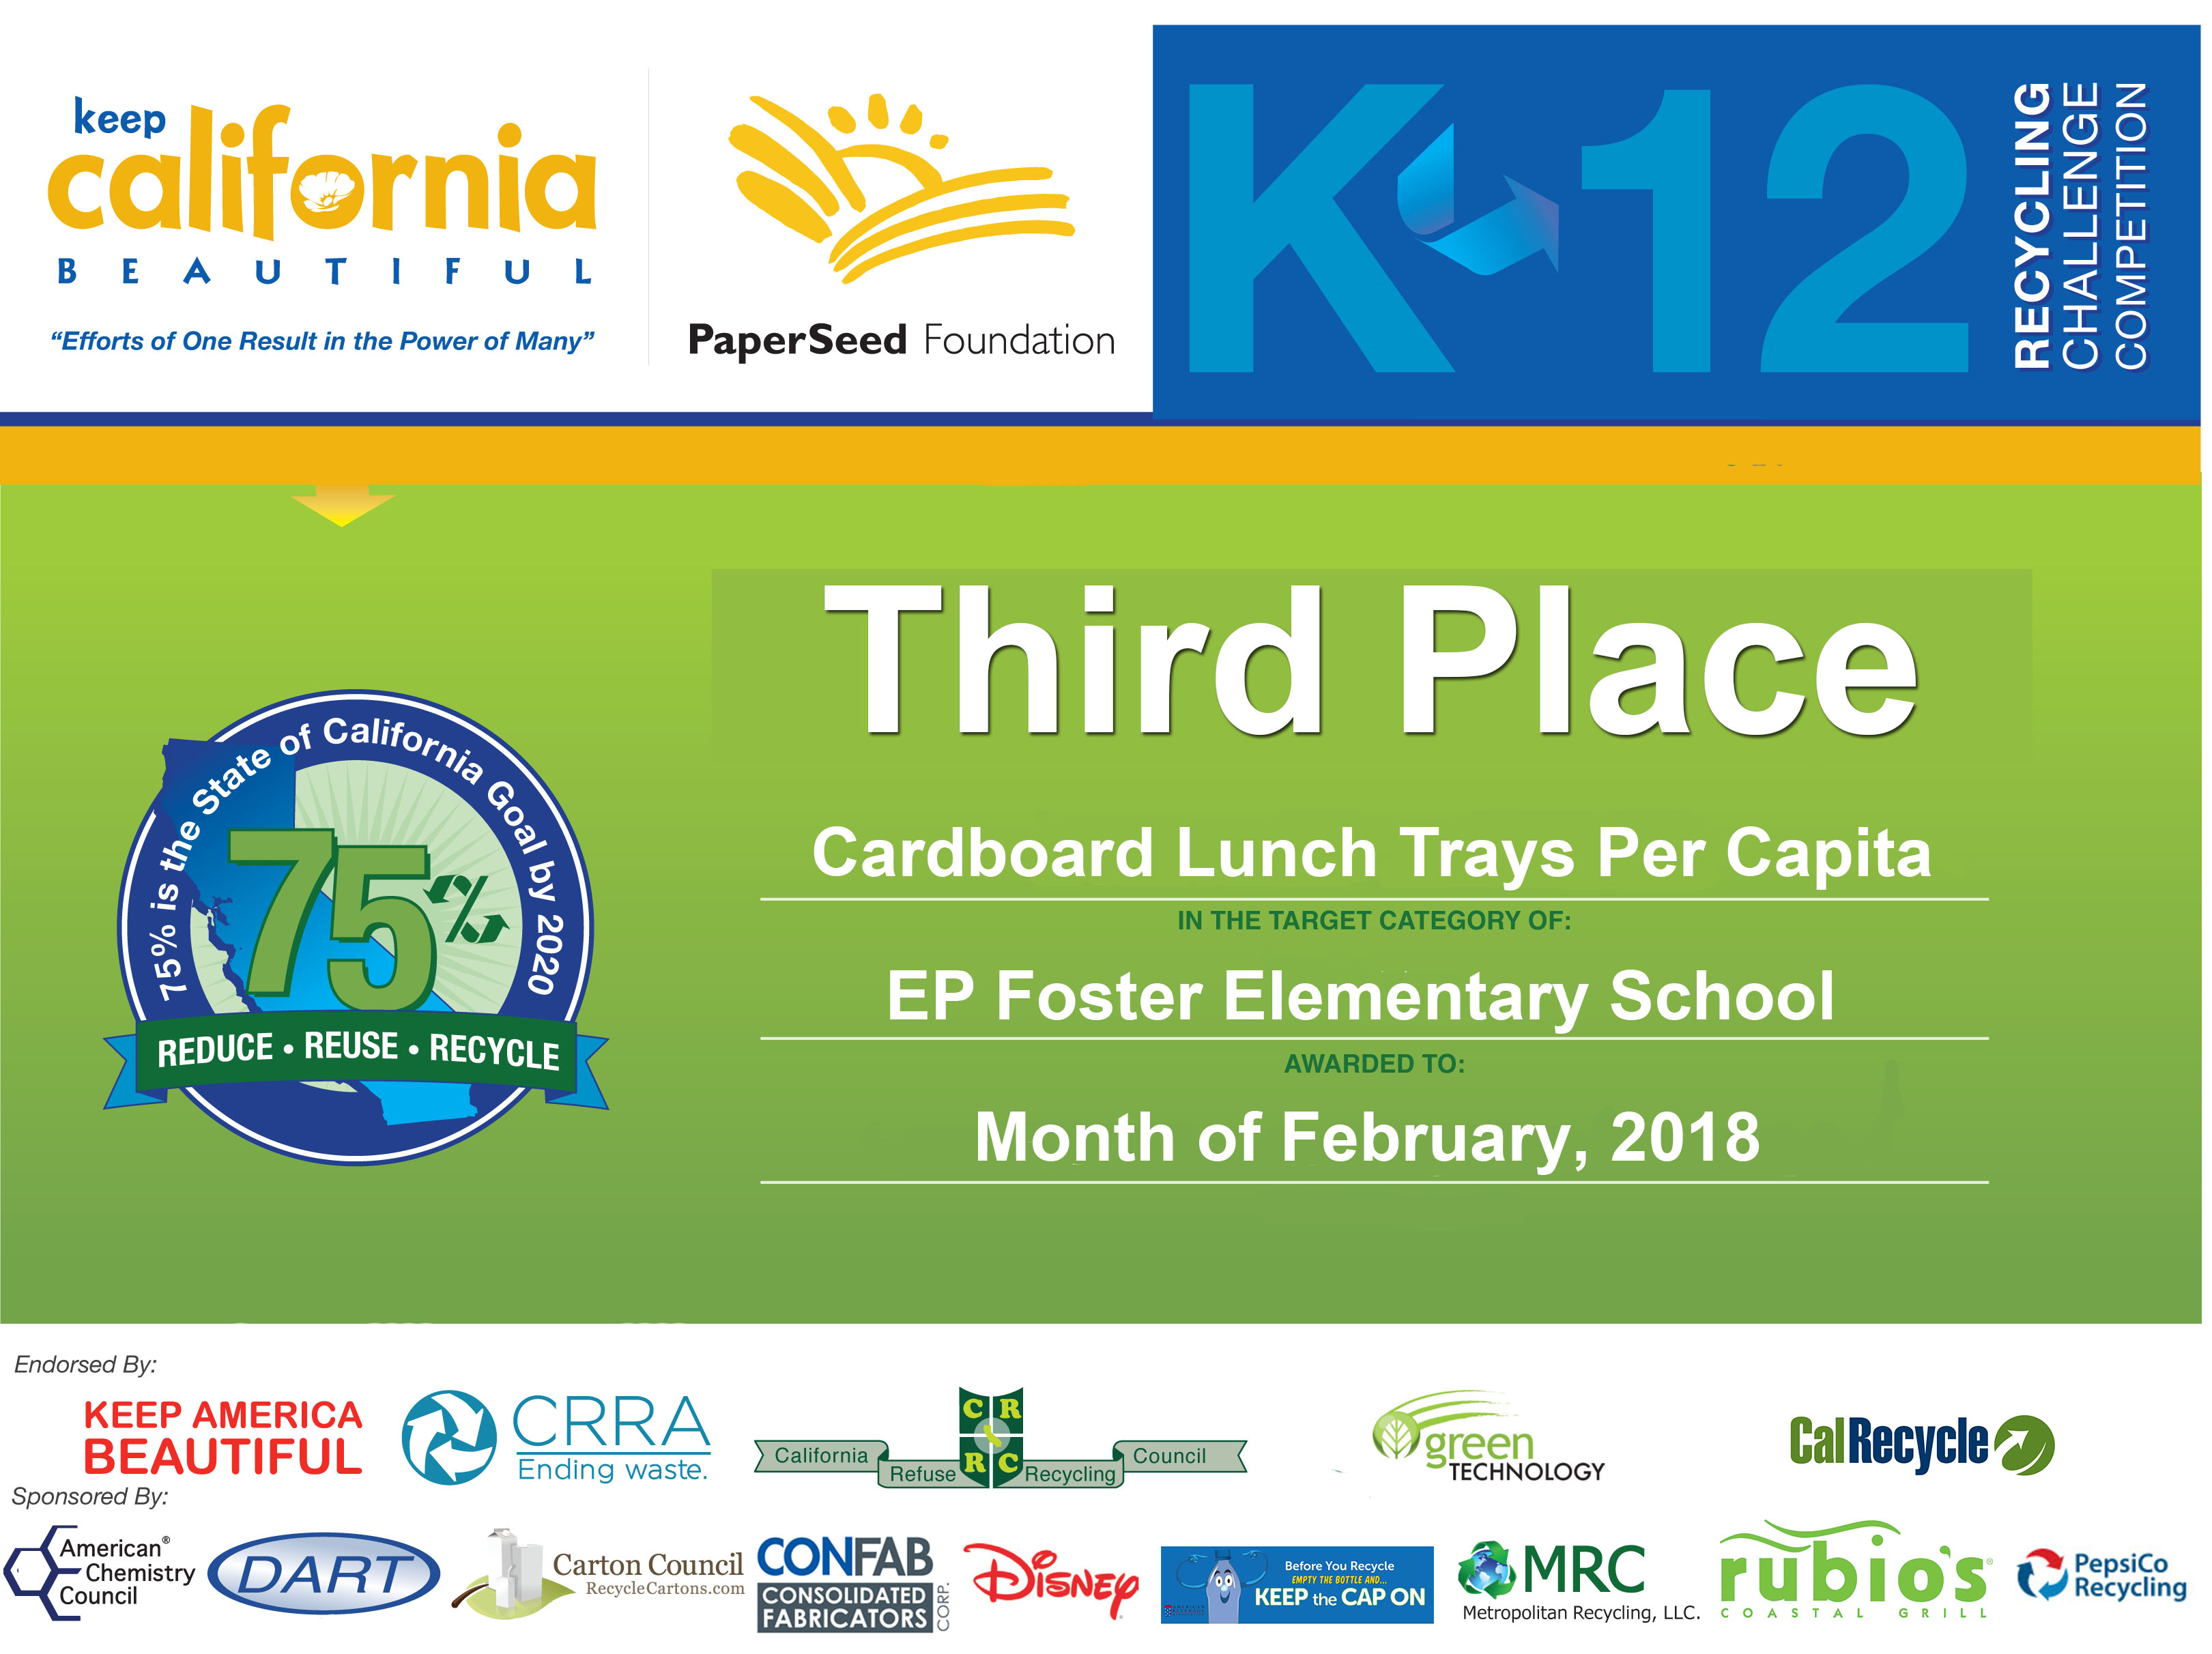 EP Foster Elementary - Cardboard Lunch Trays Recycled Per Capita 2018-3rd